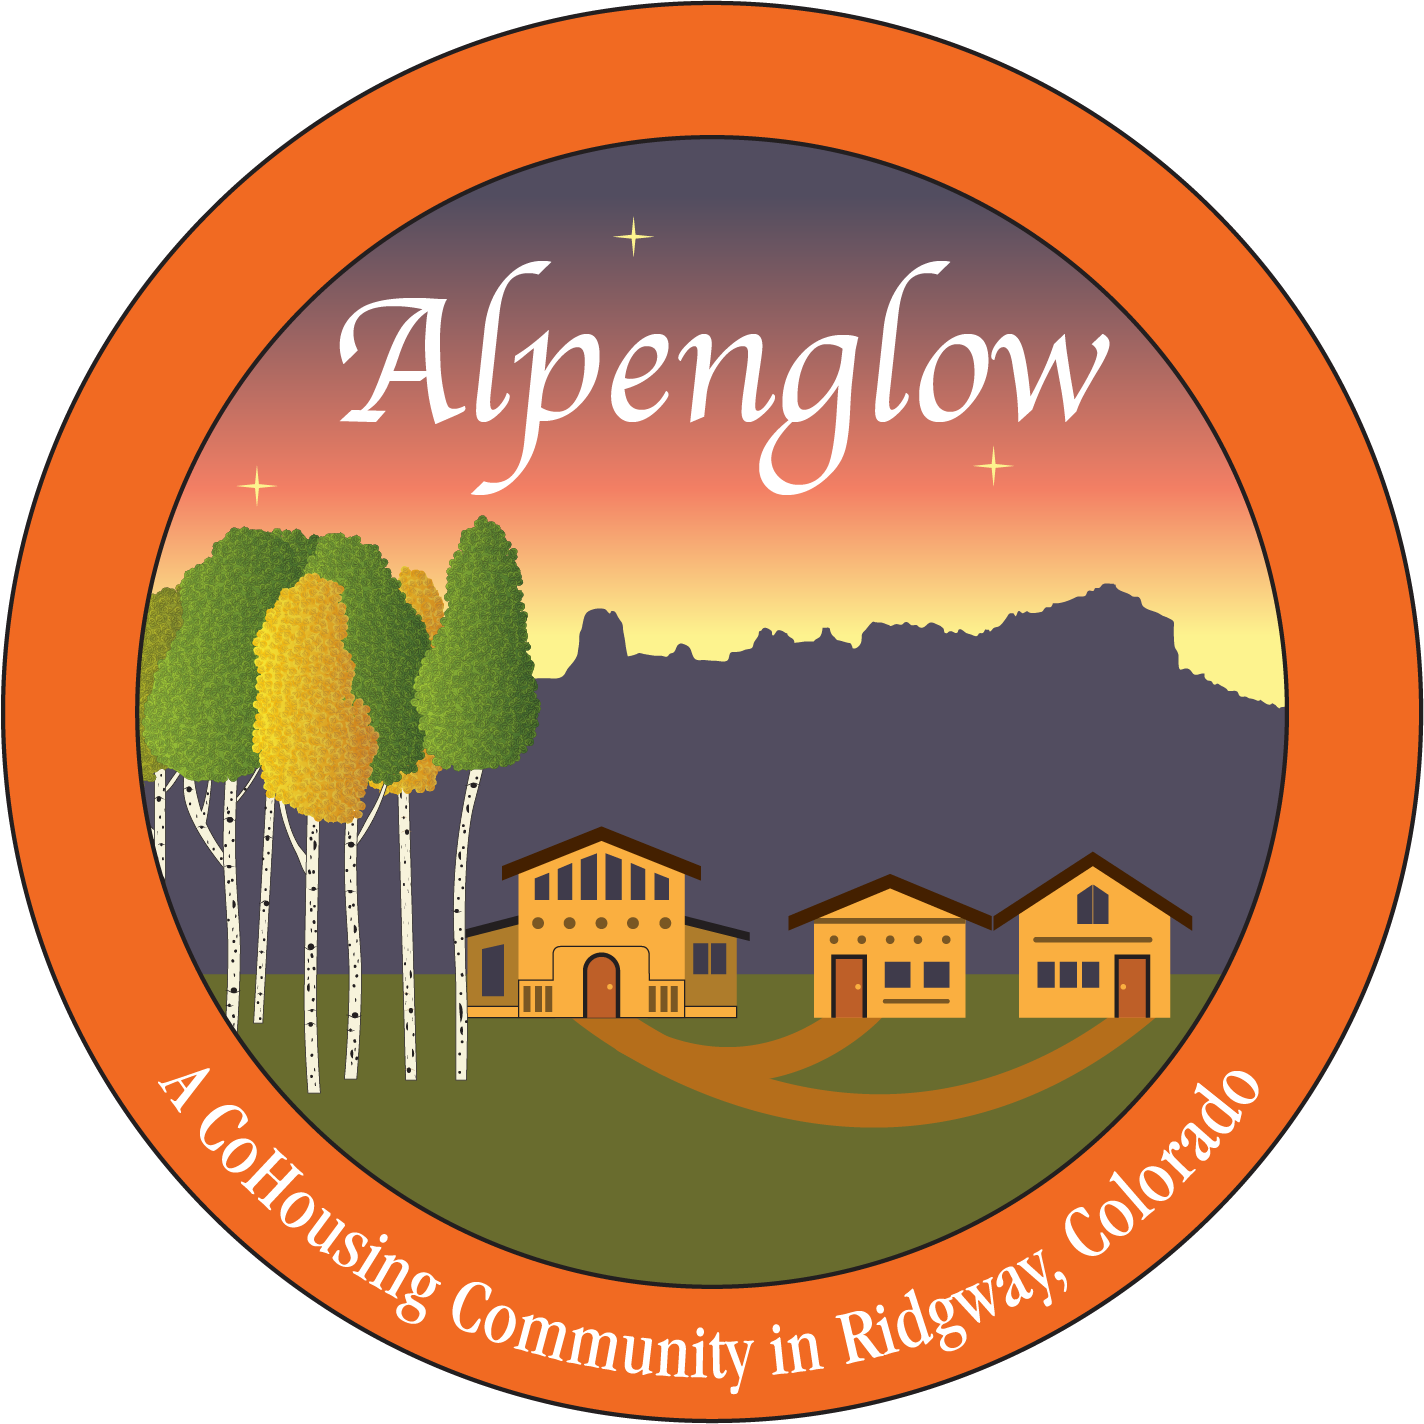 Alpenglow Co-Housing